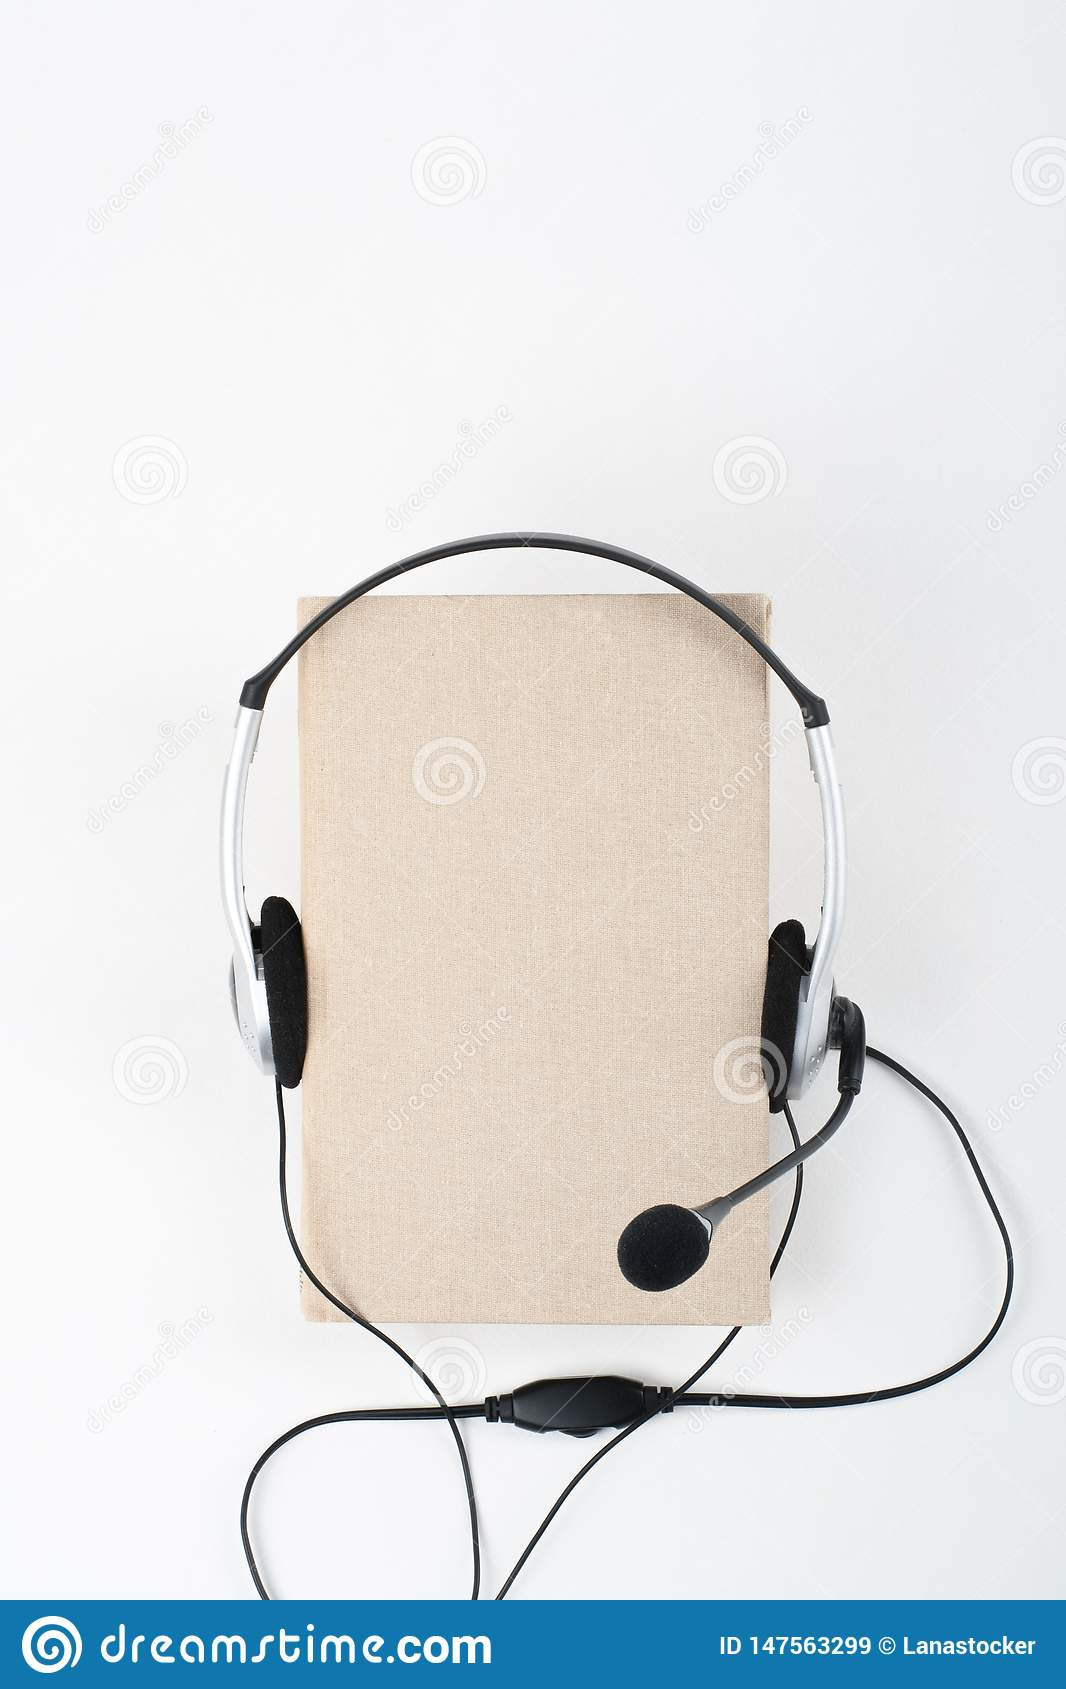 Audiobook on white background. Headphones put over yellow hardback book, empty cover, copy space for ad text. Distance